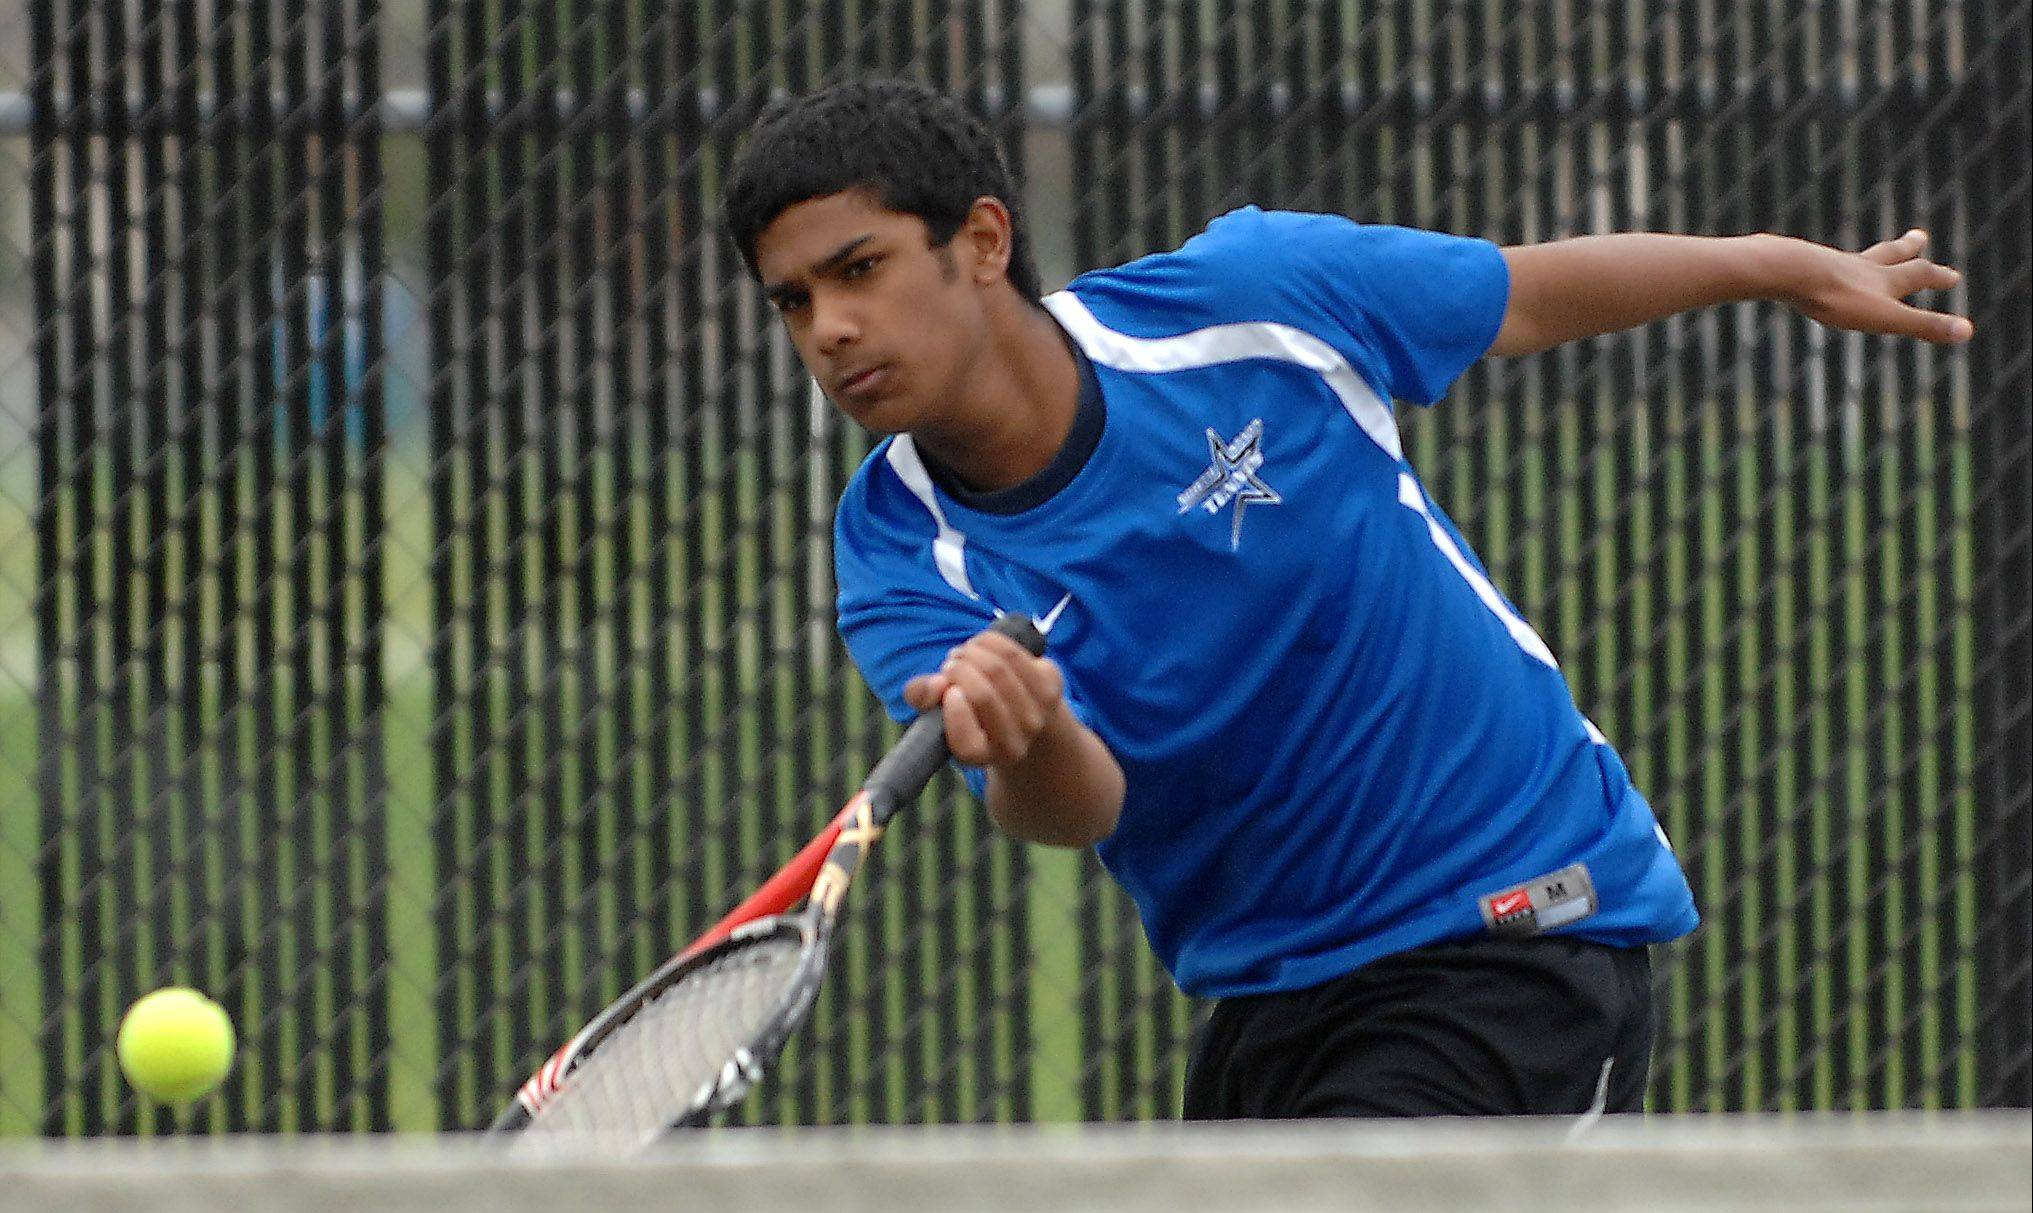 St. Charles North's Dominick Amalraj rushes for a ball at the net in the second singles finals during Saturday's Upstate Eight Conference Tournament at Streamwood.